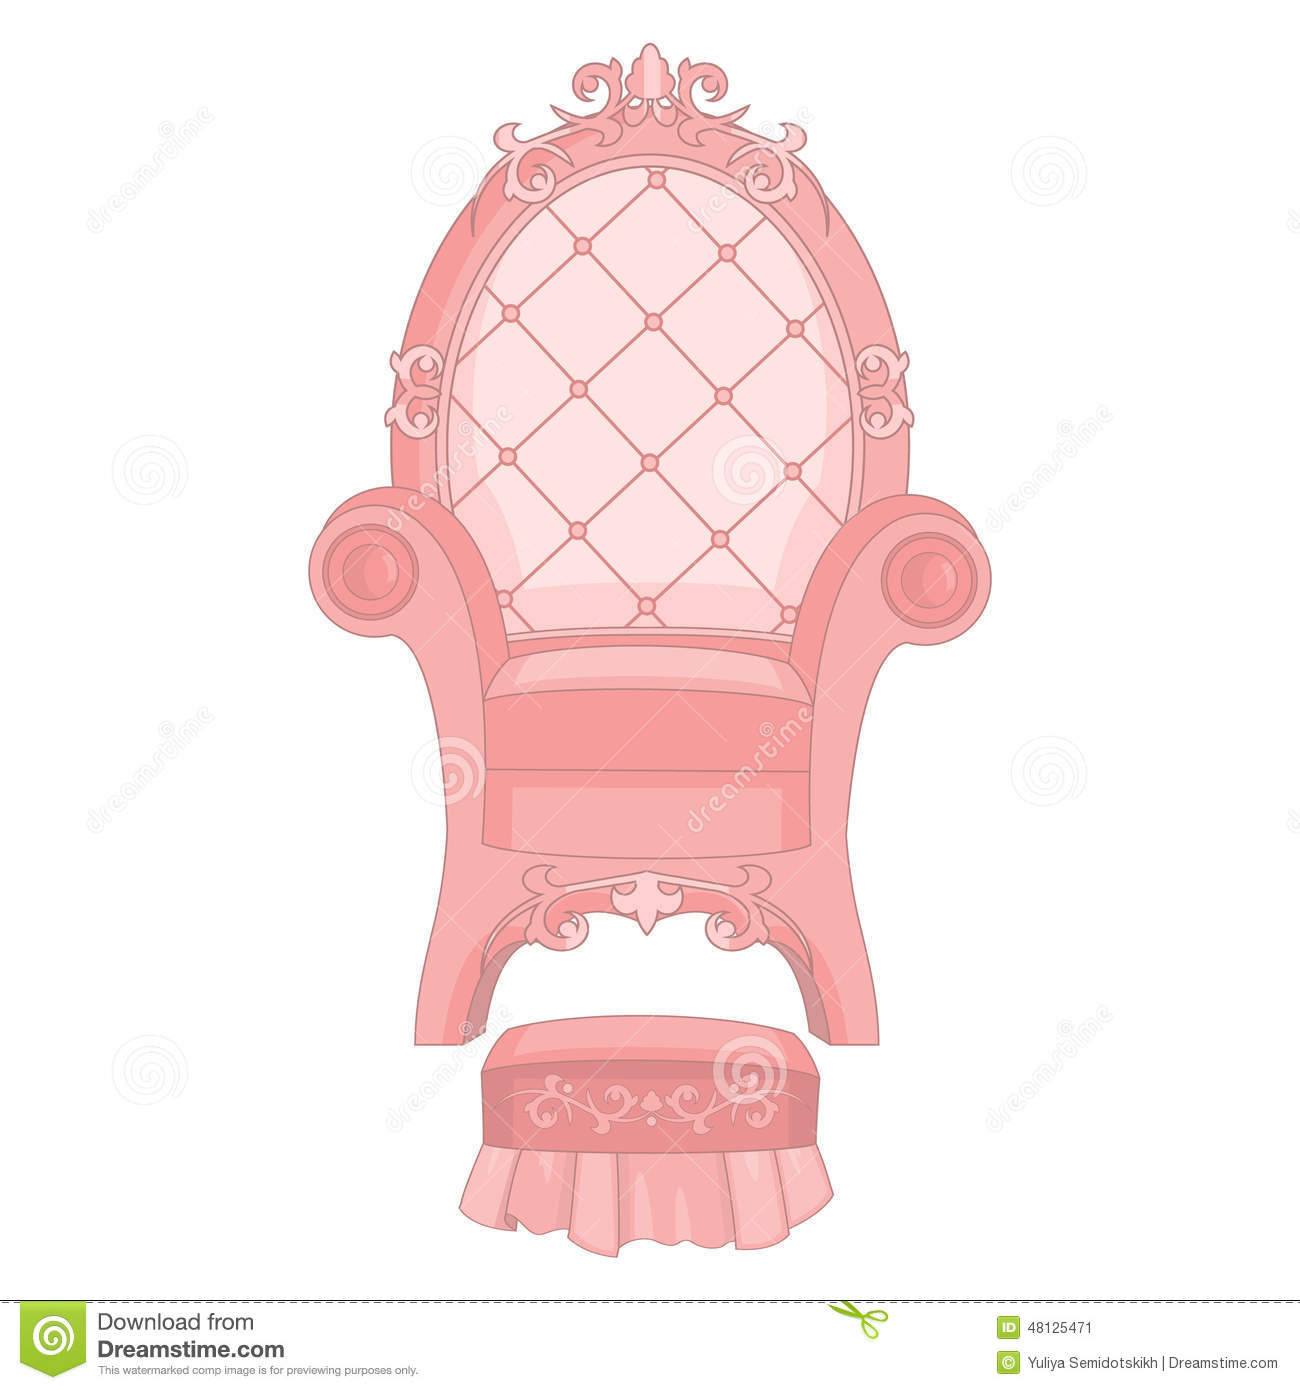 Royal Princess Throne Stock Vector Illustration Of